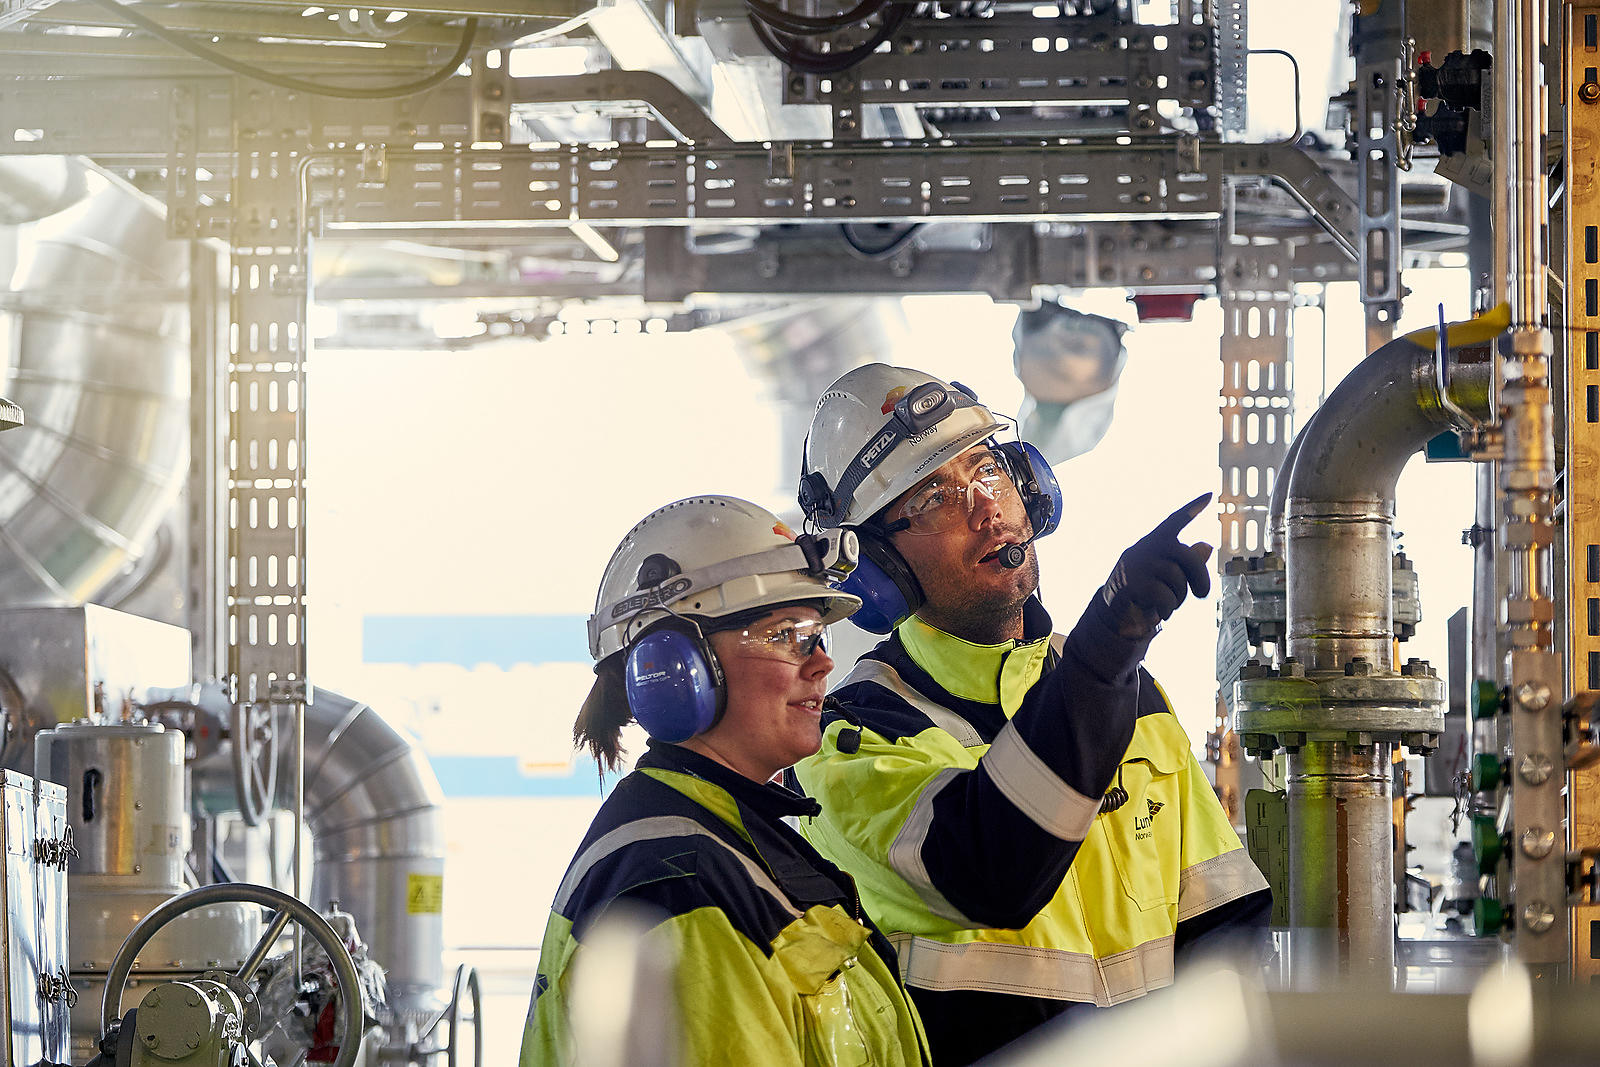 Workers at the Edvard Grieg oil rig